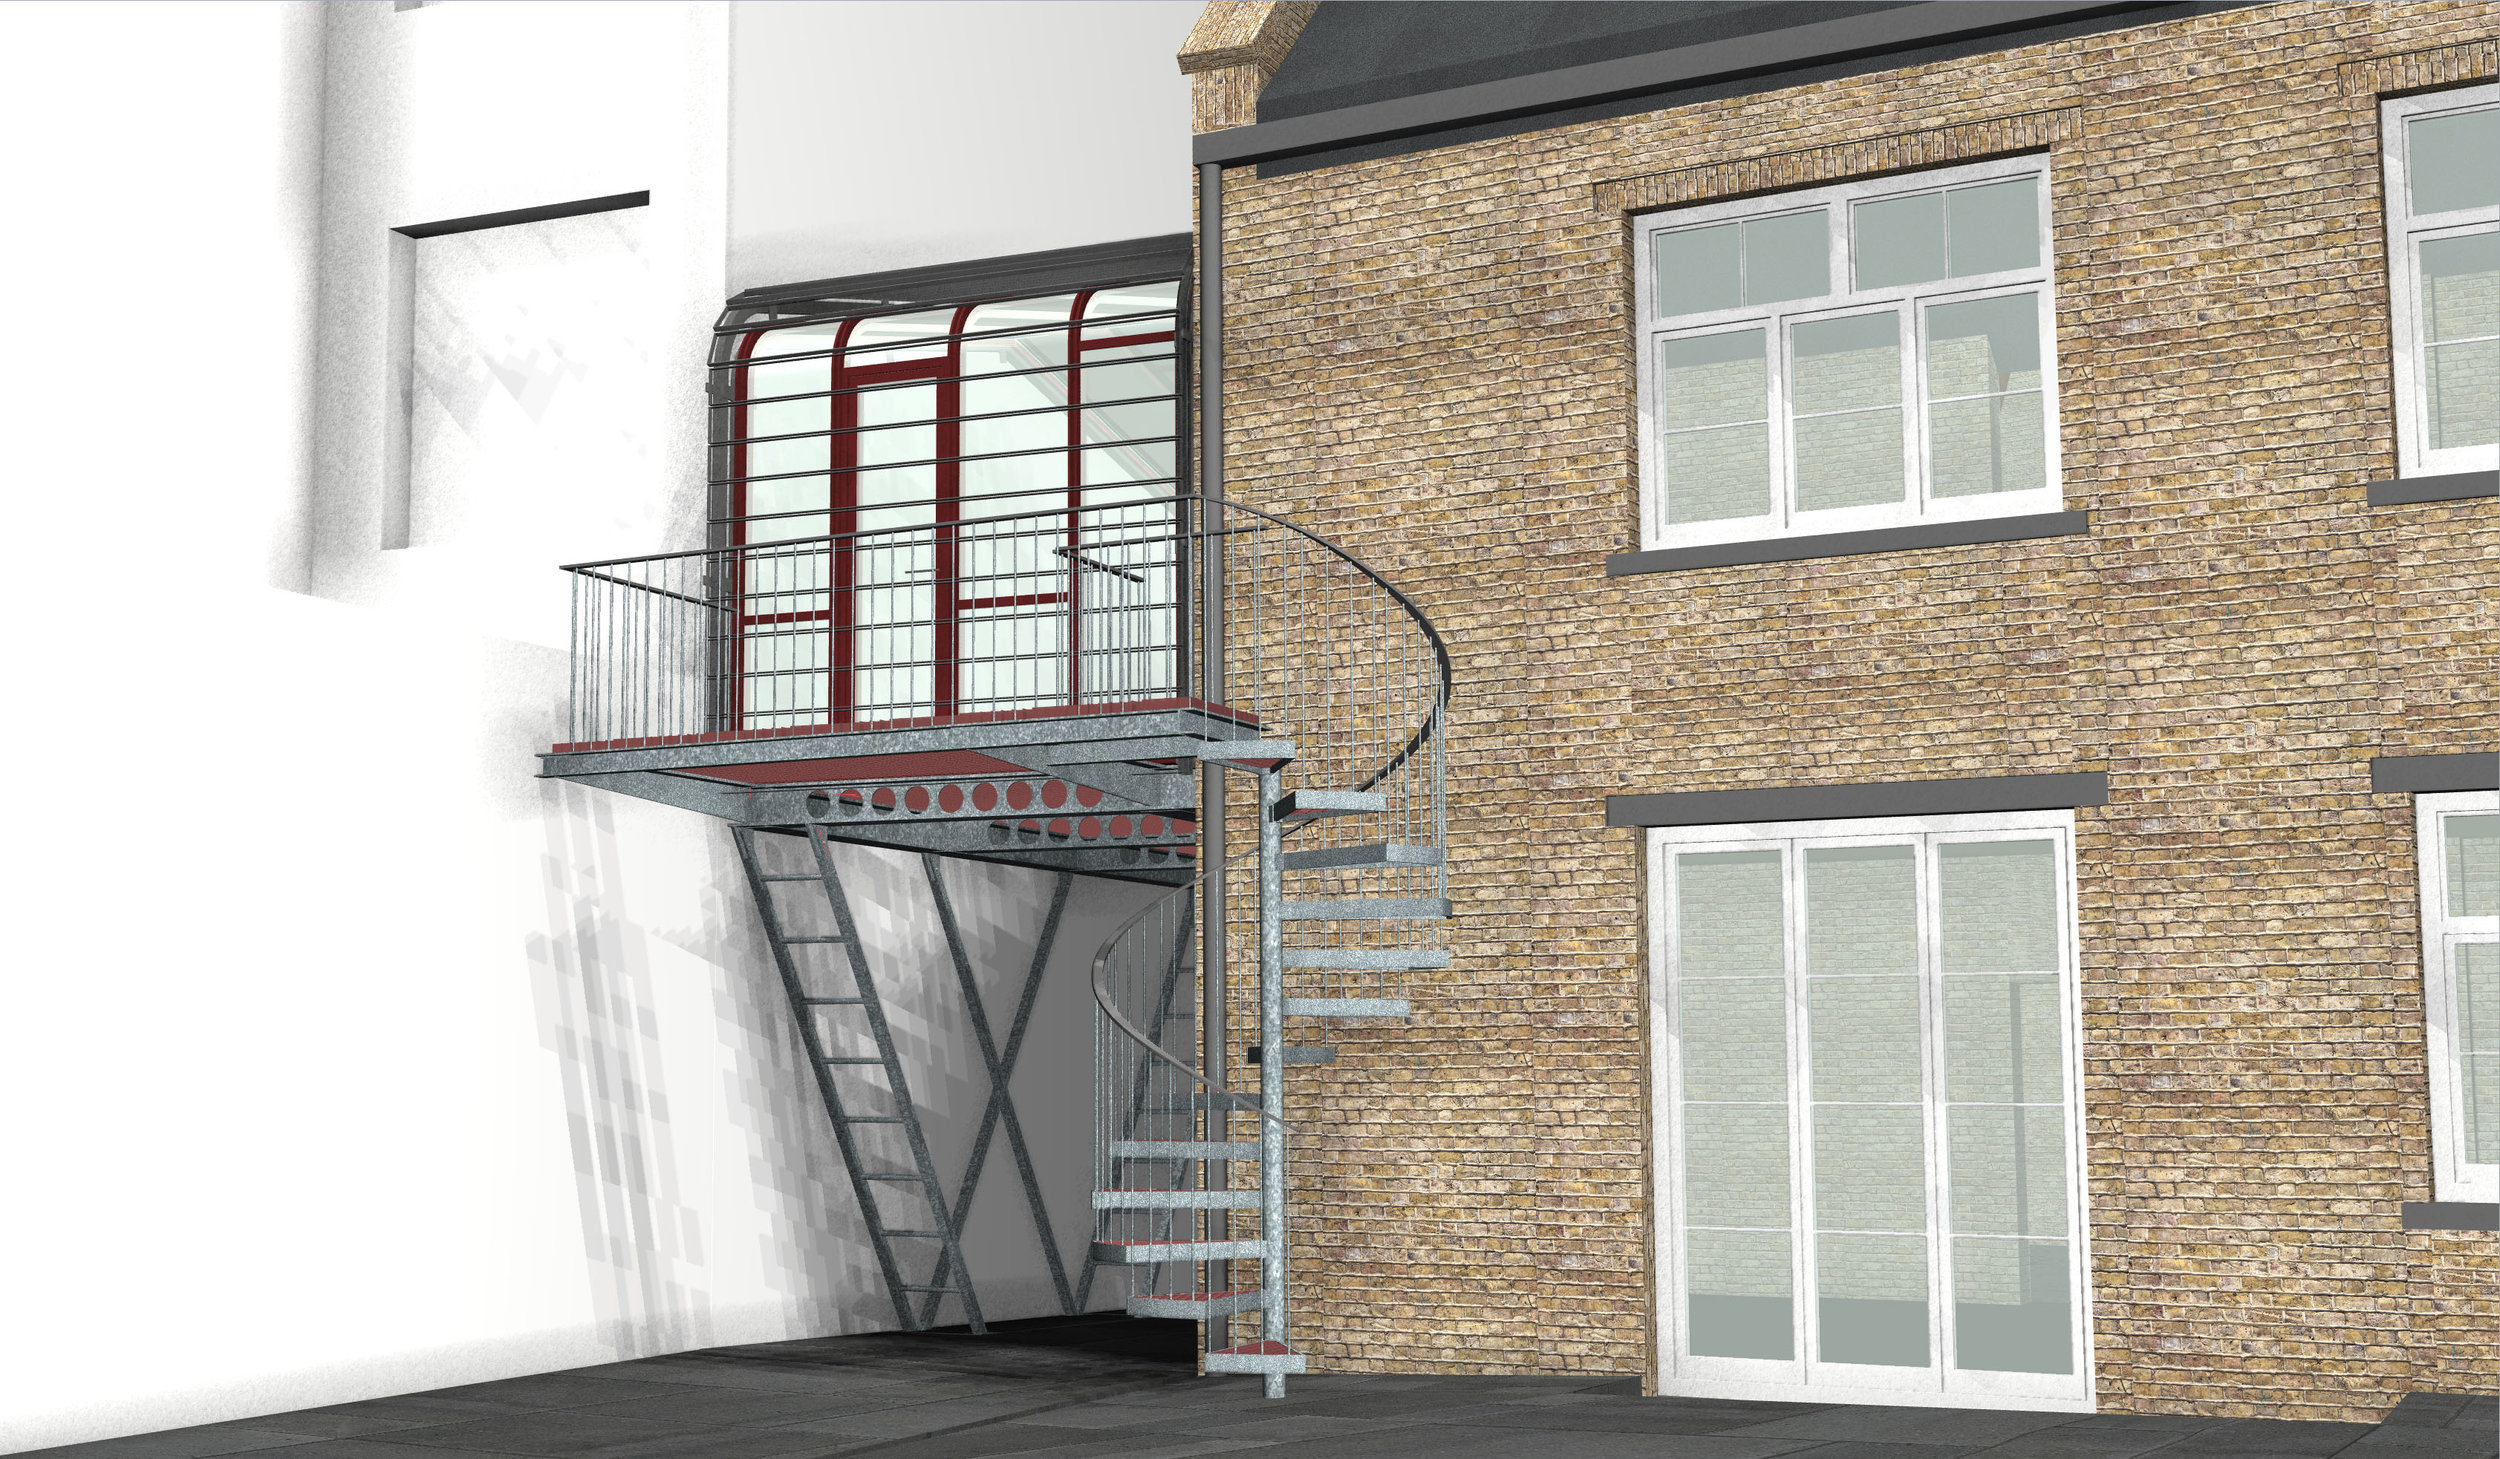 We created an additional access from the studio's backyard, through a bespoke spiral stair and balcony